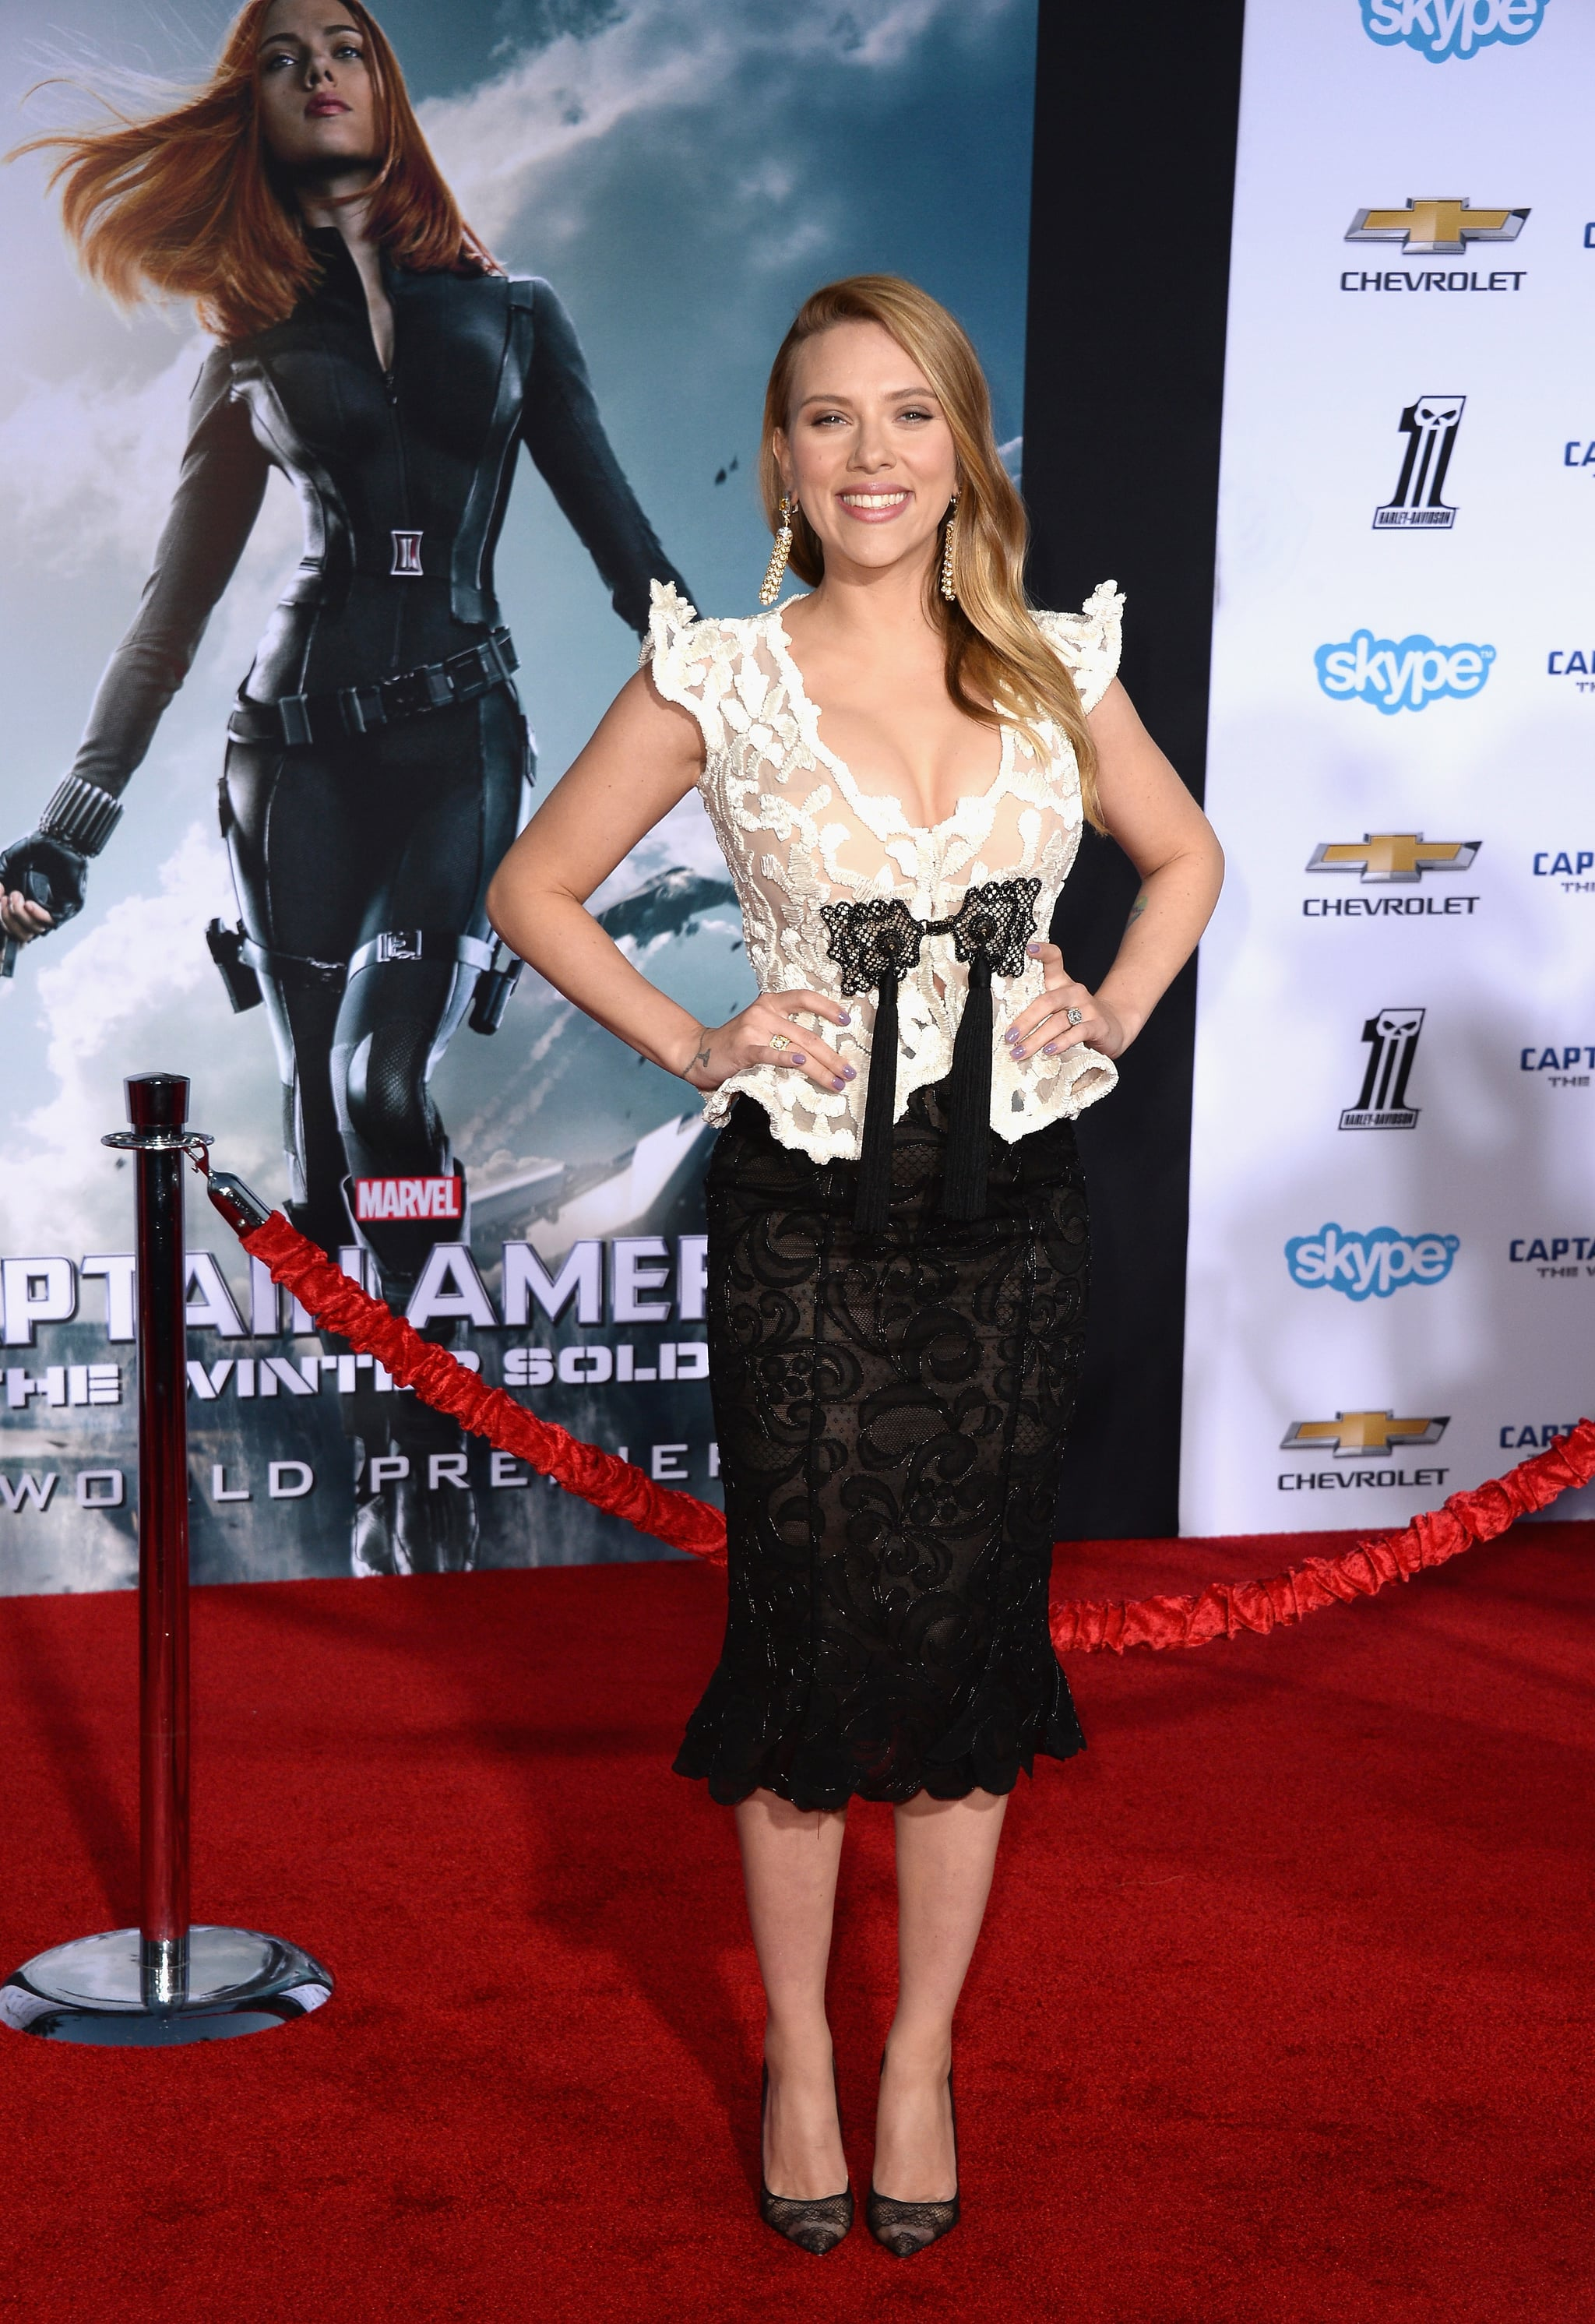 Scarlett Johansson at the LA Premiere of Captain America: The Winter Soldier